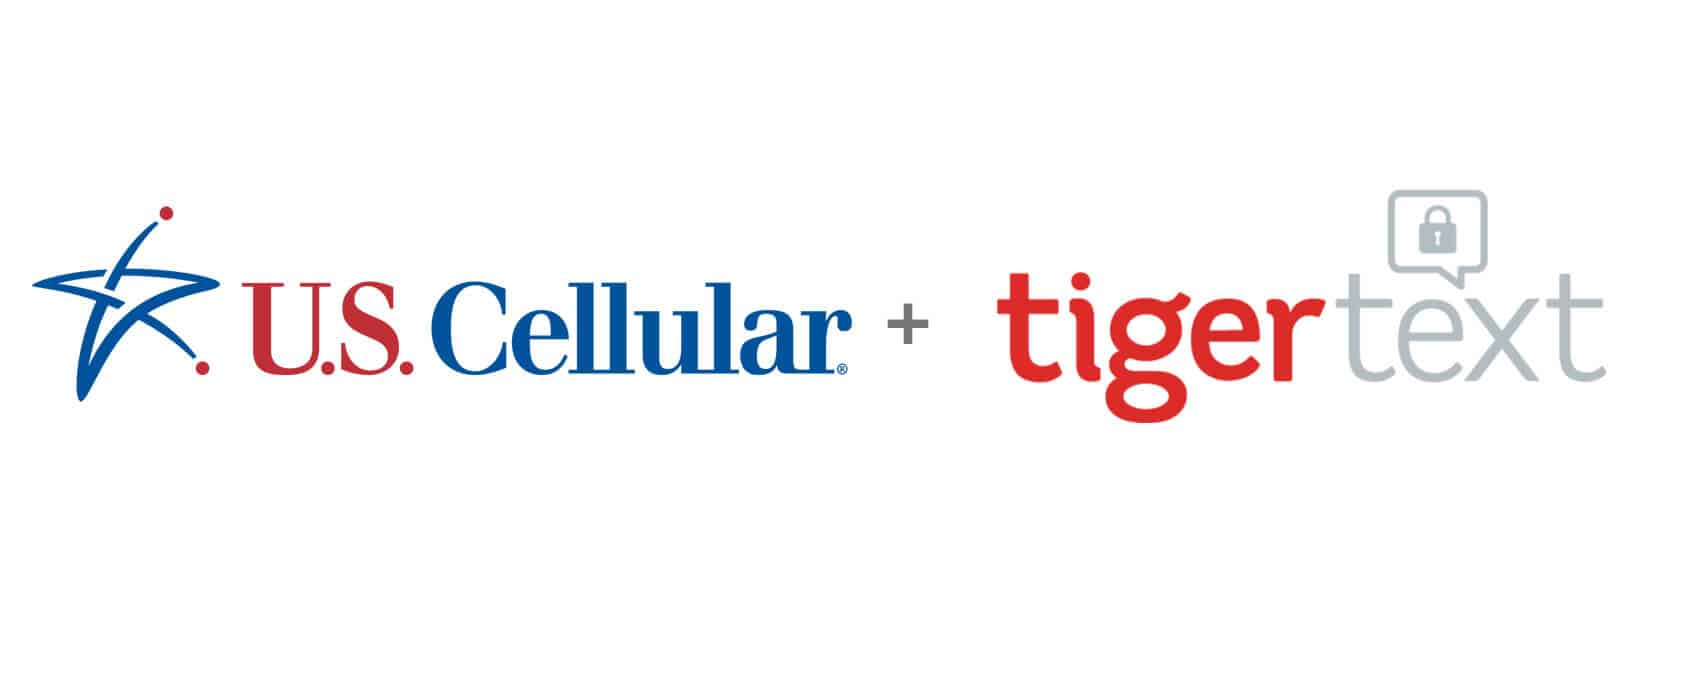 TigerText to Offer Secure Messaging Services to U.S. Cellular Customers